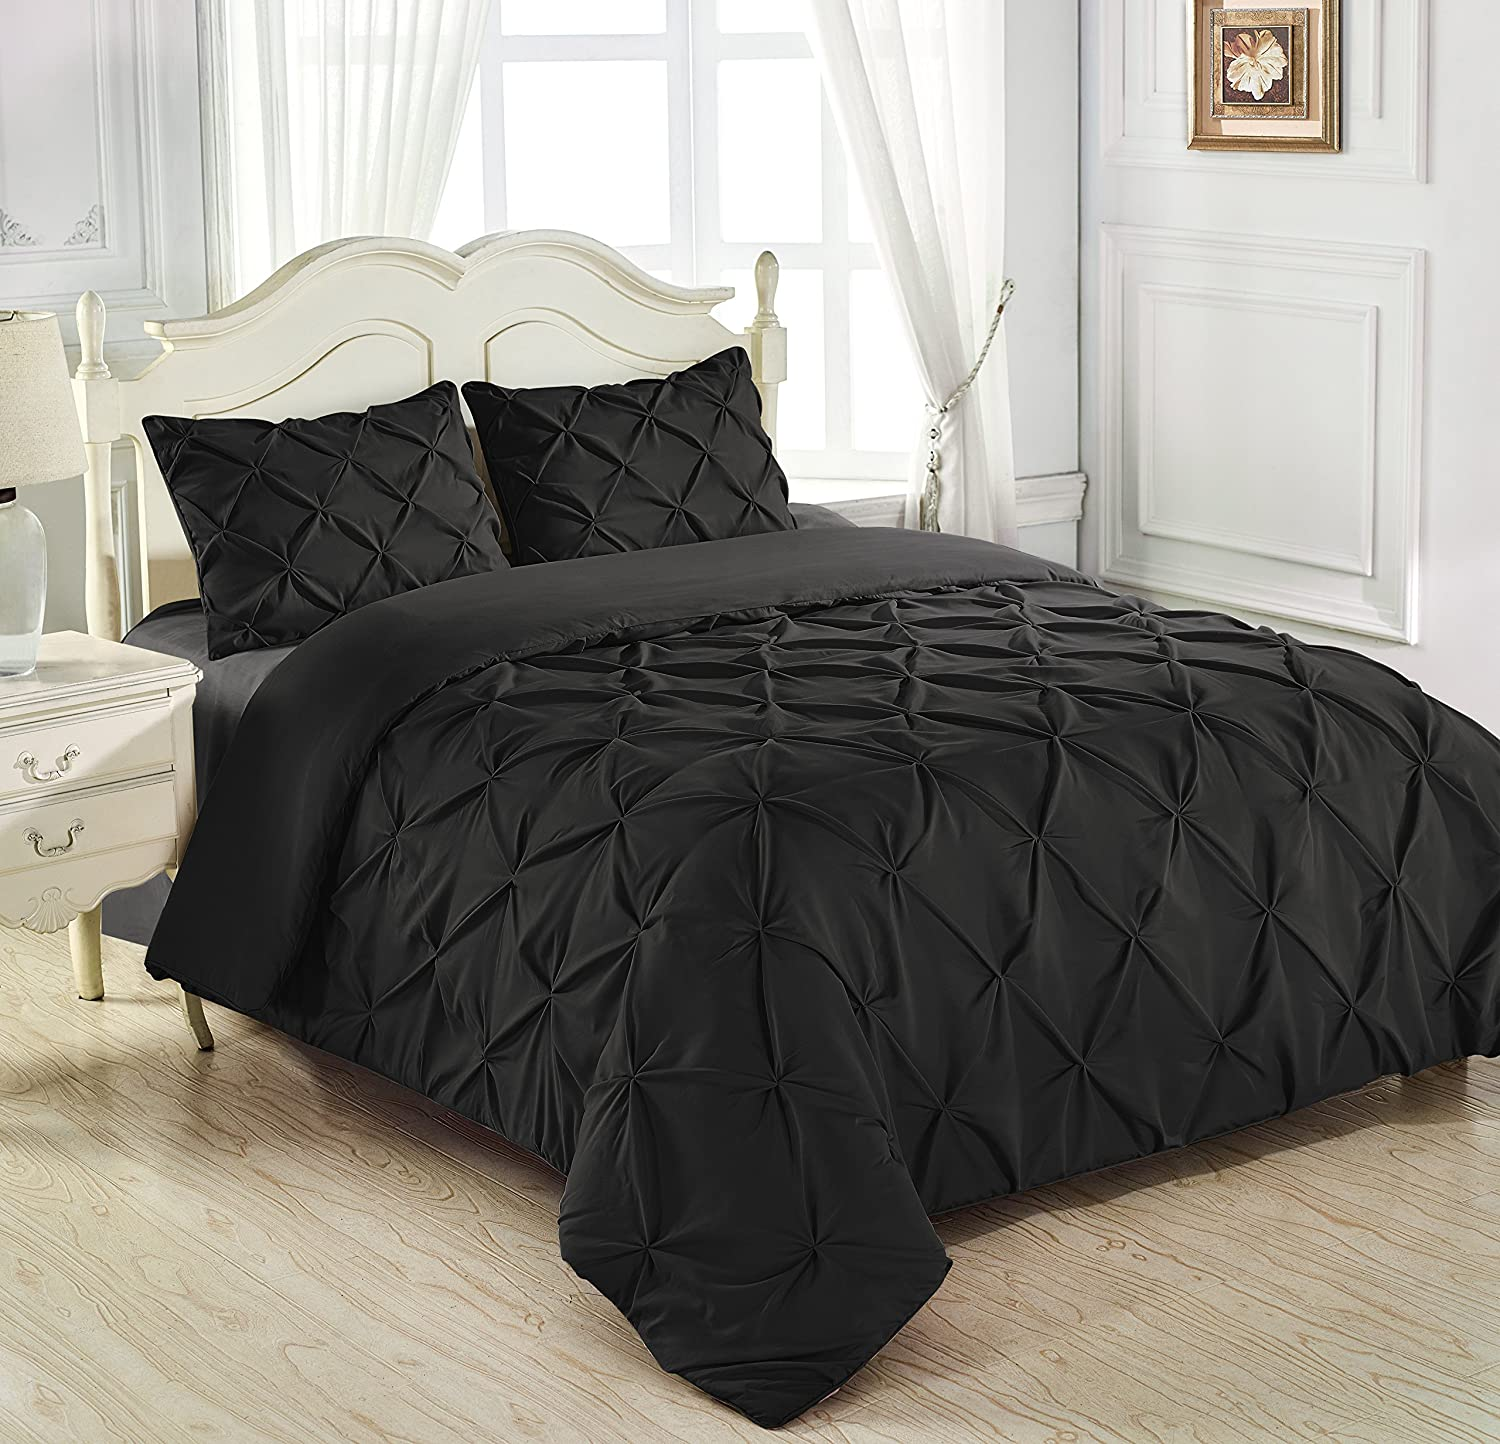 King & Queen Home Reinforced Double Stitch 3 Piece Pinch Pleat Comforter Set (Full, Black